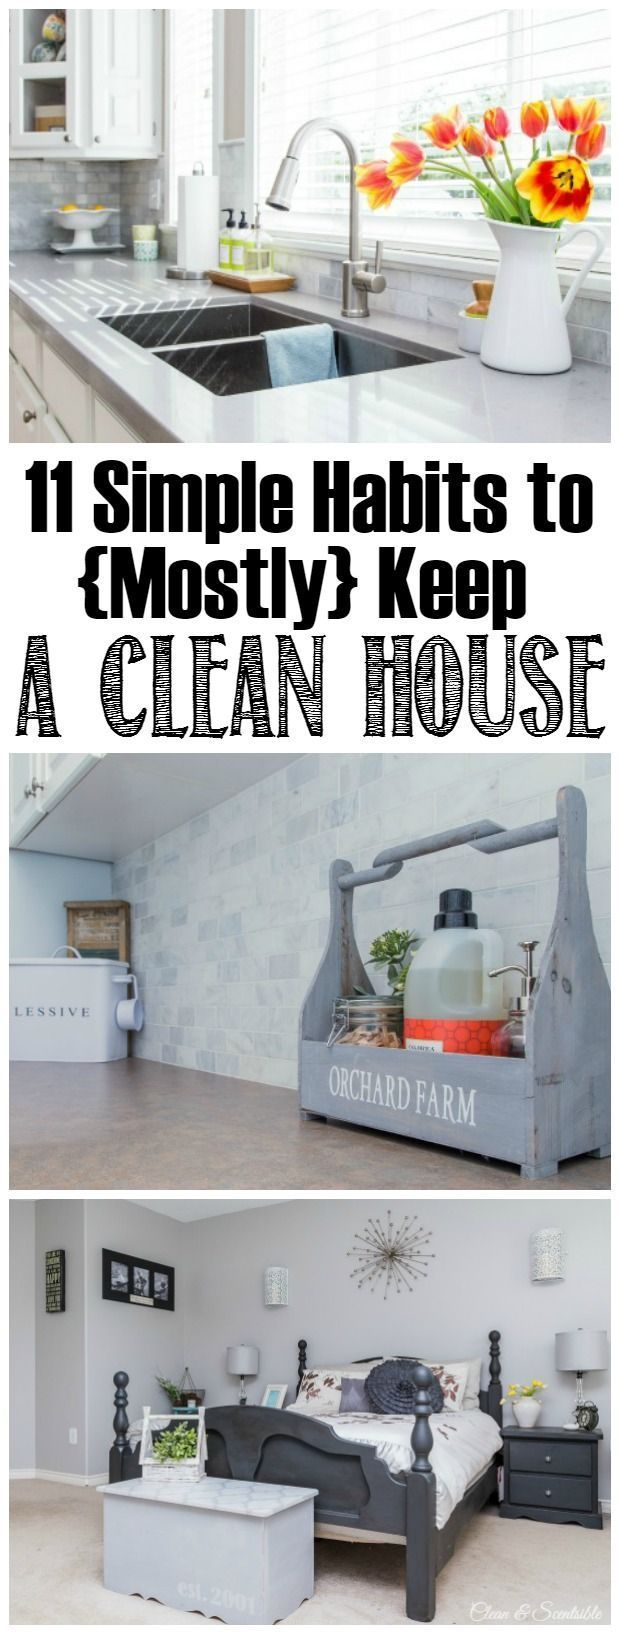 Keep a house clean and tidy with these 11 daily habits. They are simple to follow and anyone can do them!